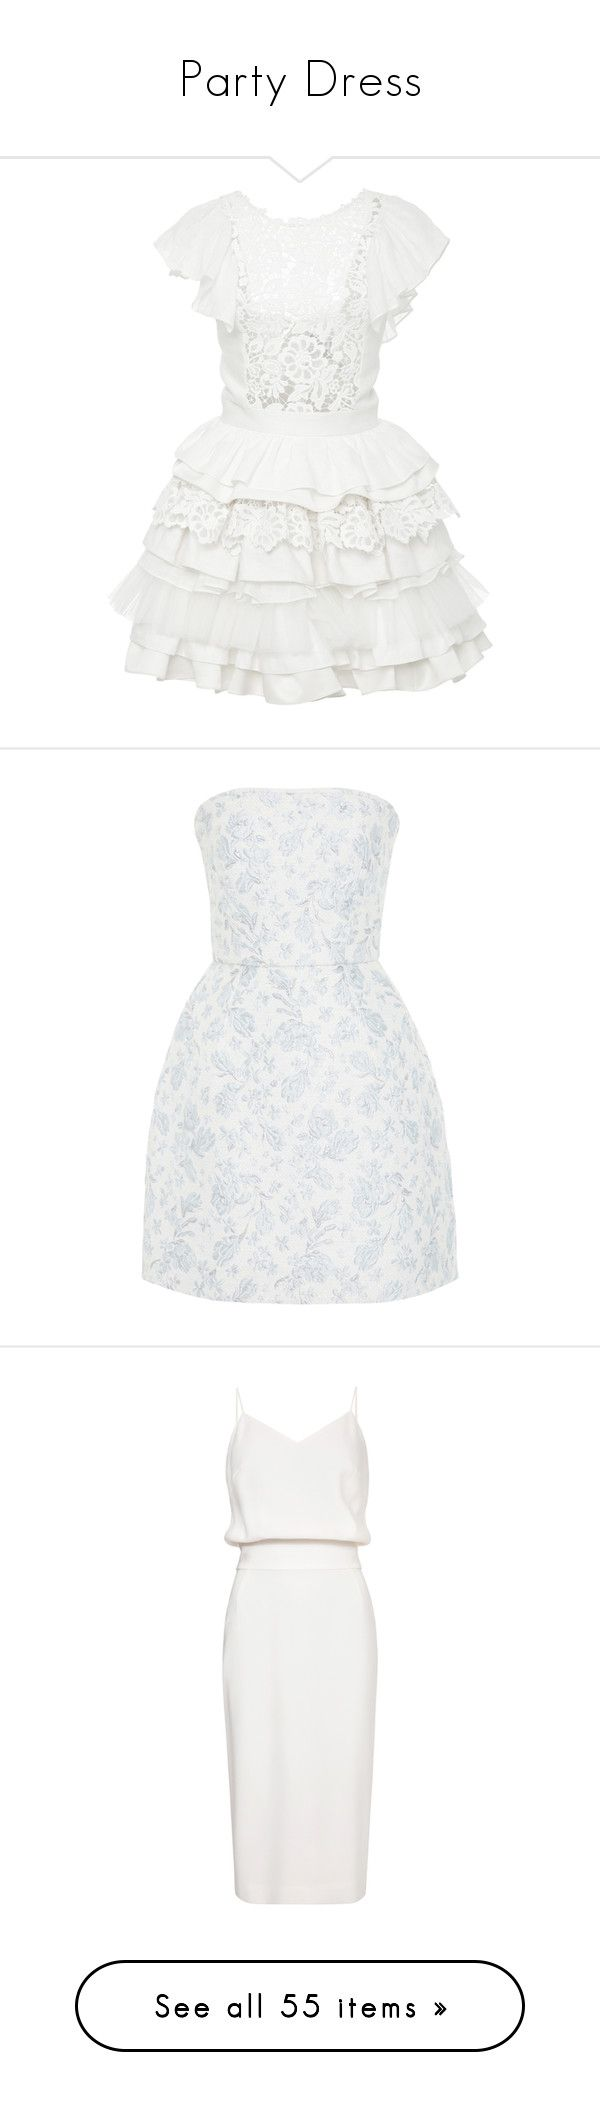 """""""Party Dress"""" by luciaborrayo on Polyvore featuring dresses, white, white frilly dress, tiered ruffle dress, ruffle cocktail dress, white ruffle dress, applique dress, blue, white blue dress y blue fit and flare dress"""